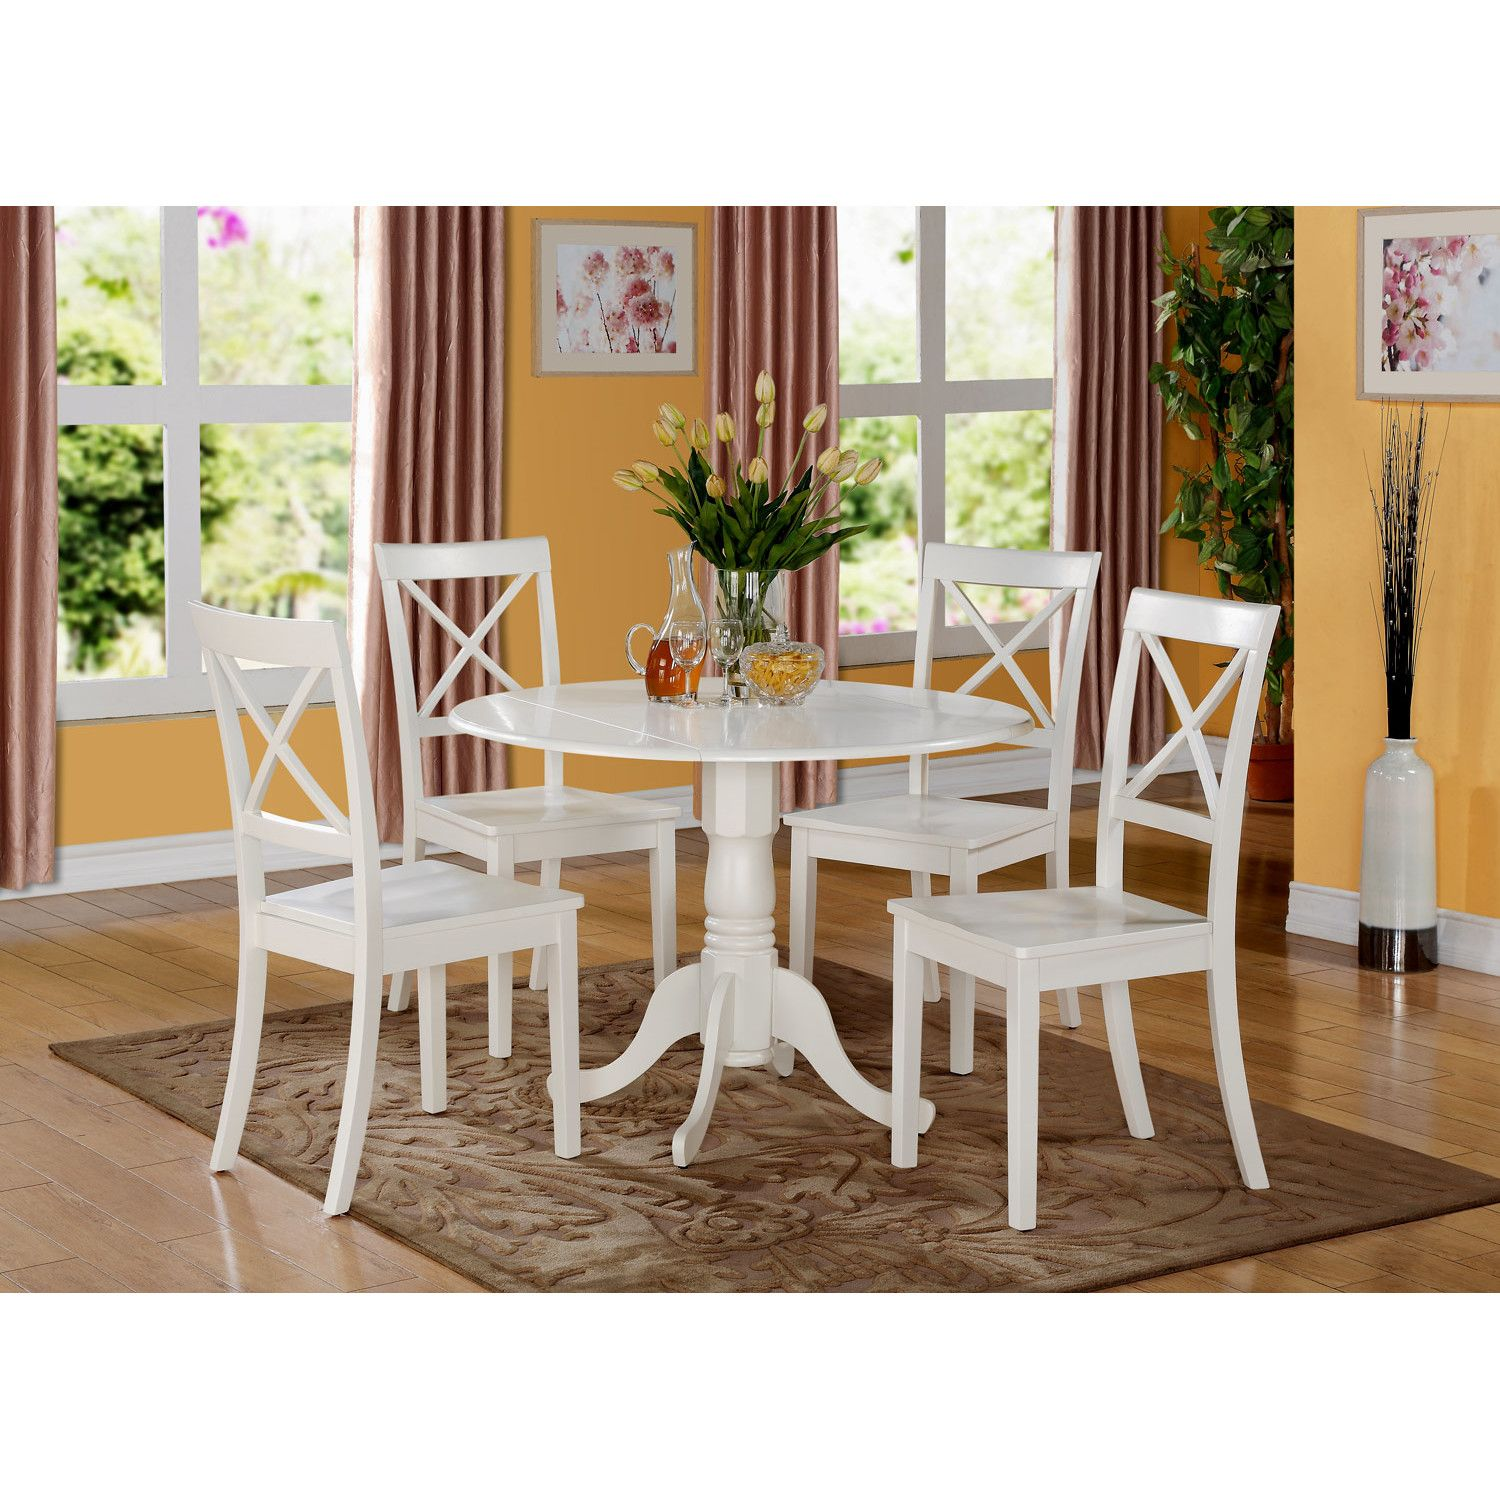 Charlton Home Gloucester 5 Piece Dining Set Round Dining Table Sets Small Glass Dining Table Dinette Chairs